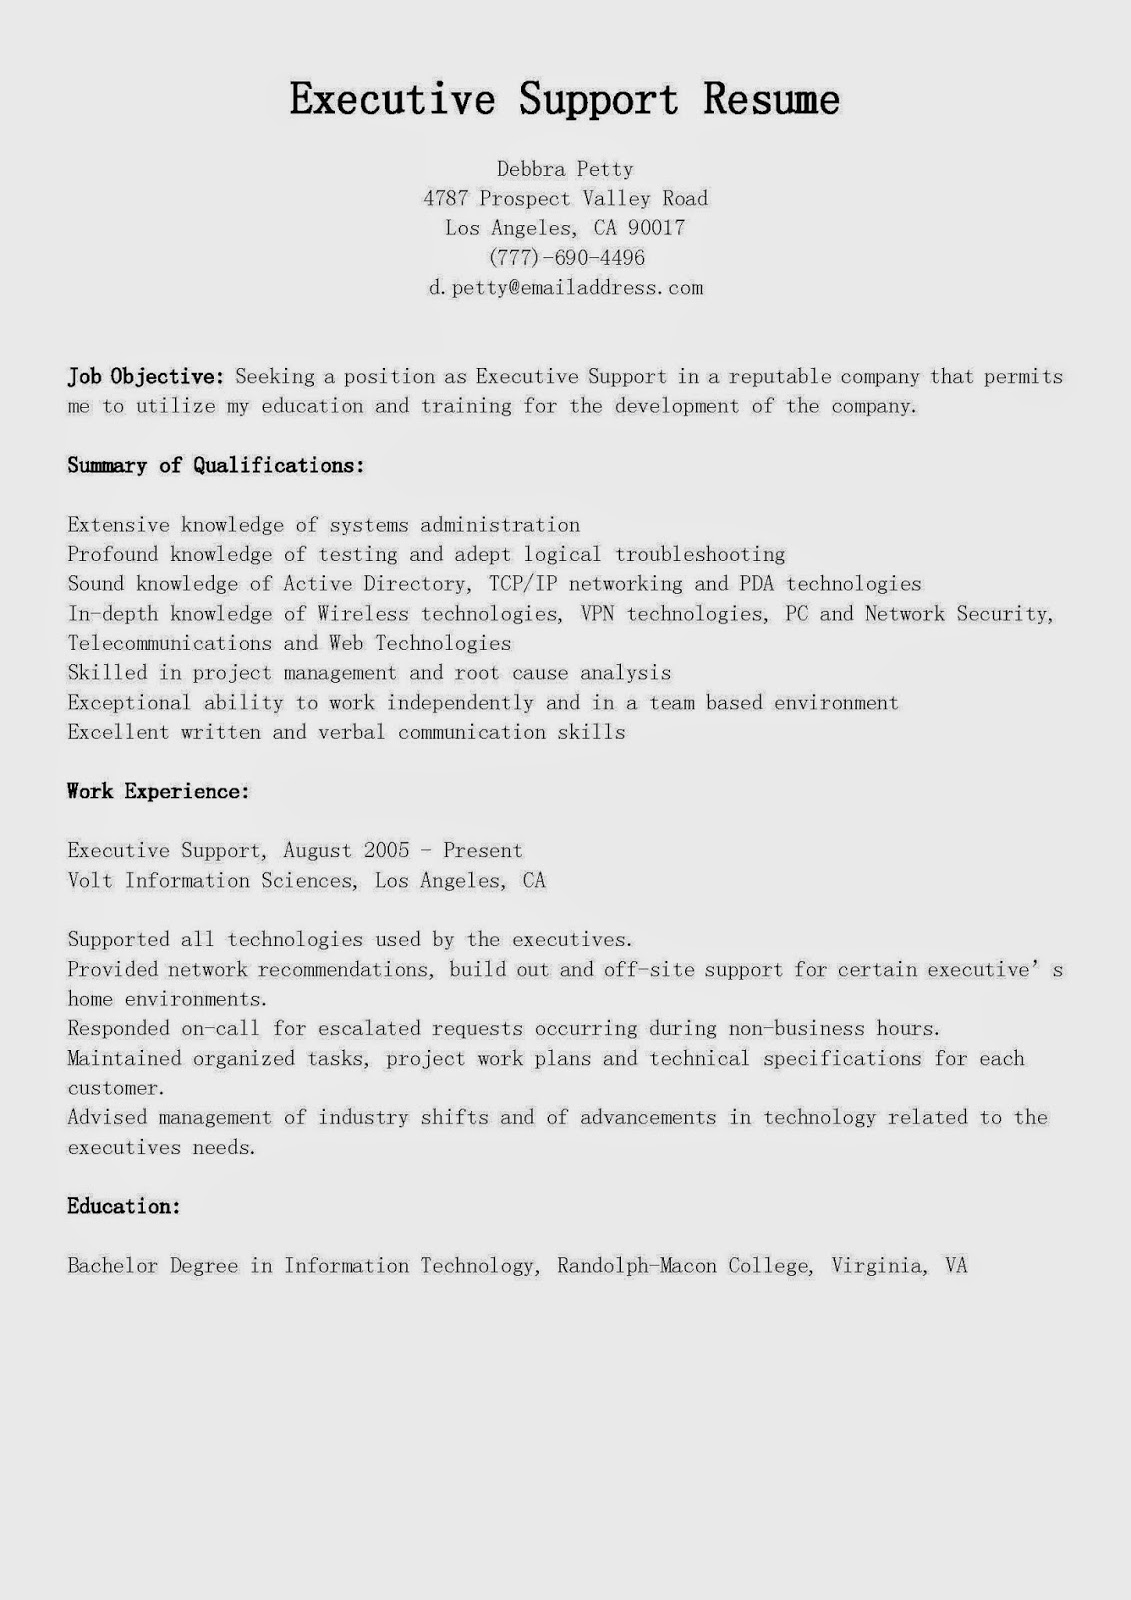 resume samples  executive support resume sample